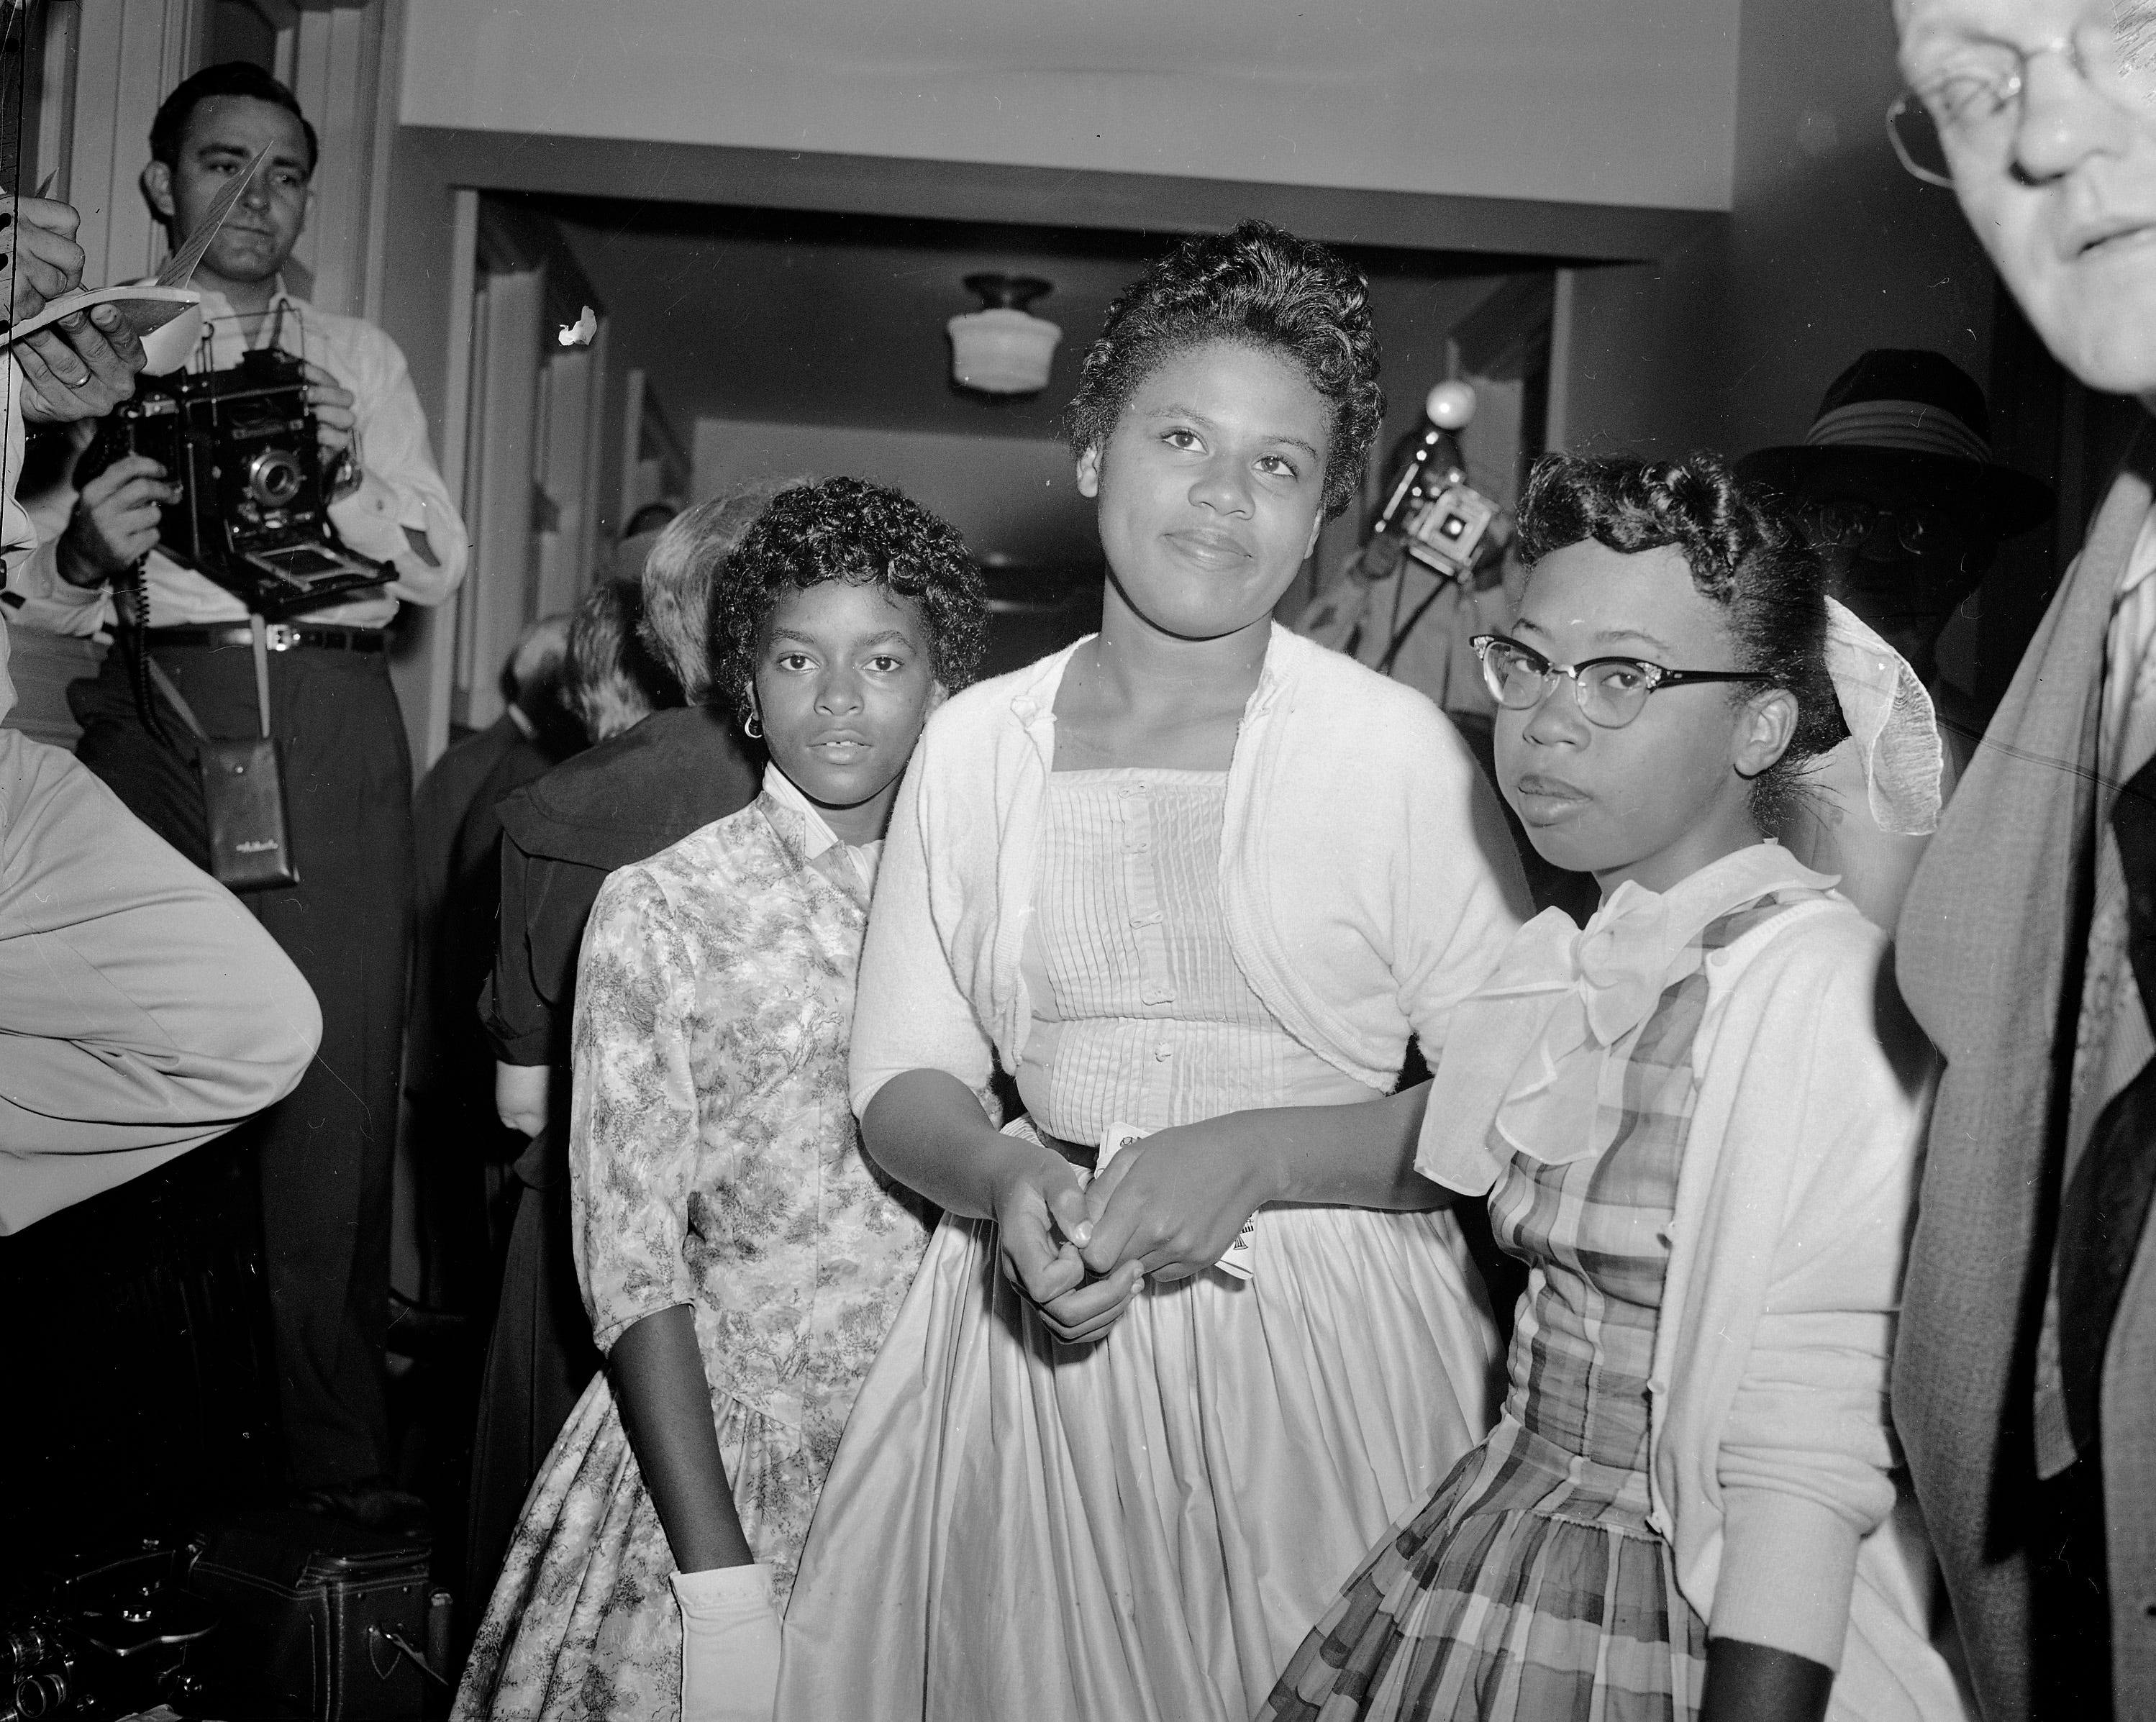 From left, Dorothy Frazier, 13, Minnie Brown, 15, and Thelma Mothershed, 16, wait in a corridor of the U.S. Courthouse at Little Rock, Arkansas, where they were called to testify at a hearing on the integration problems at Central High School, Sept. 7, 1957.  Thelma and Minnie were two of the students who were turned away by the National Guard as they attempted to enter the building on the first day of school.